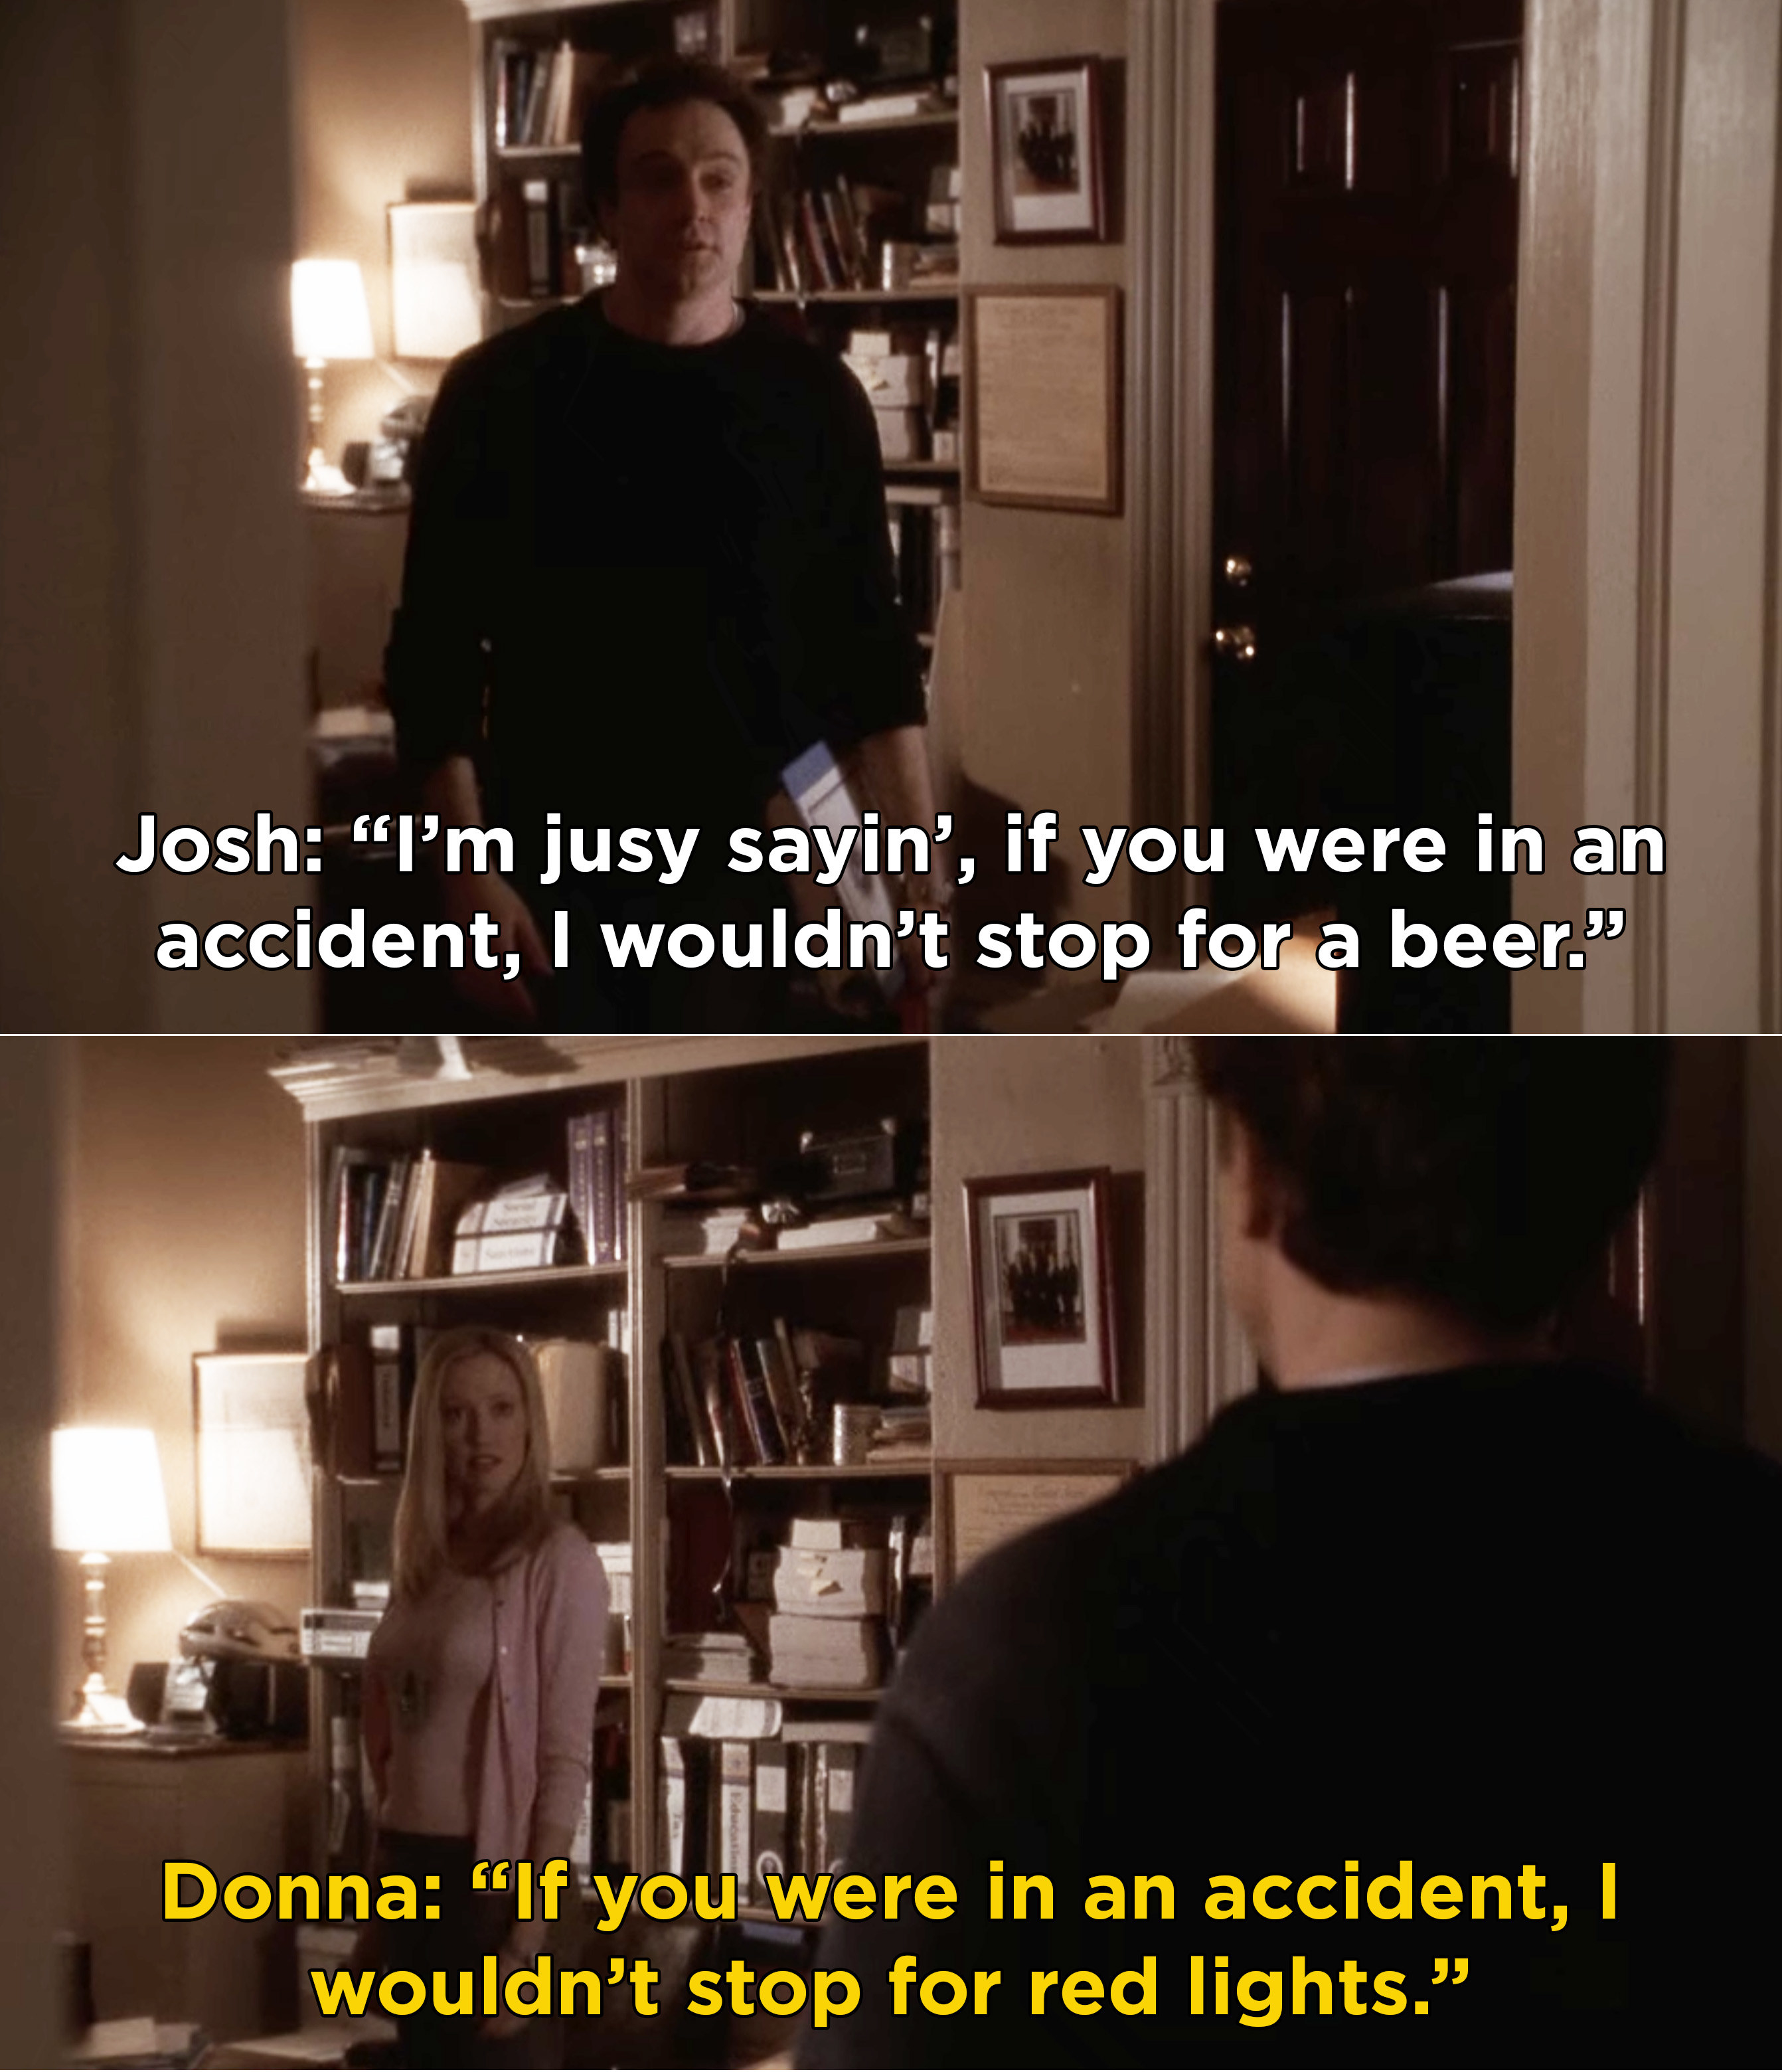 Josh telling Donna that he wouldn't stop for a beer if she was in an accident, and Donna saying that she wouldn't stop for red lights